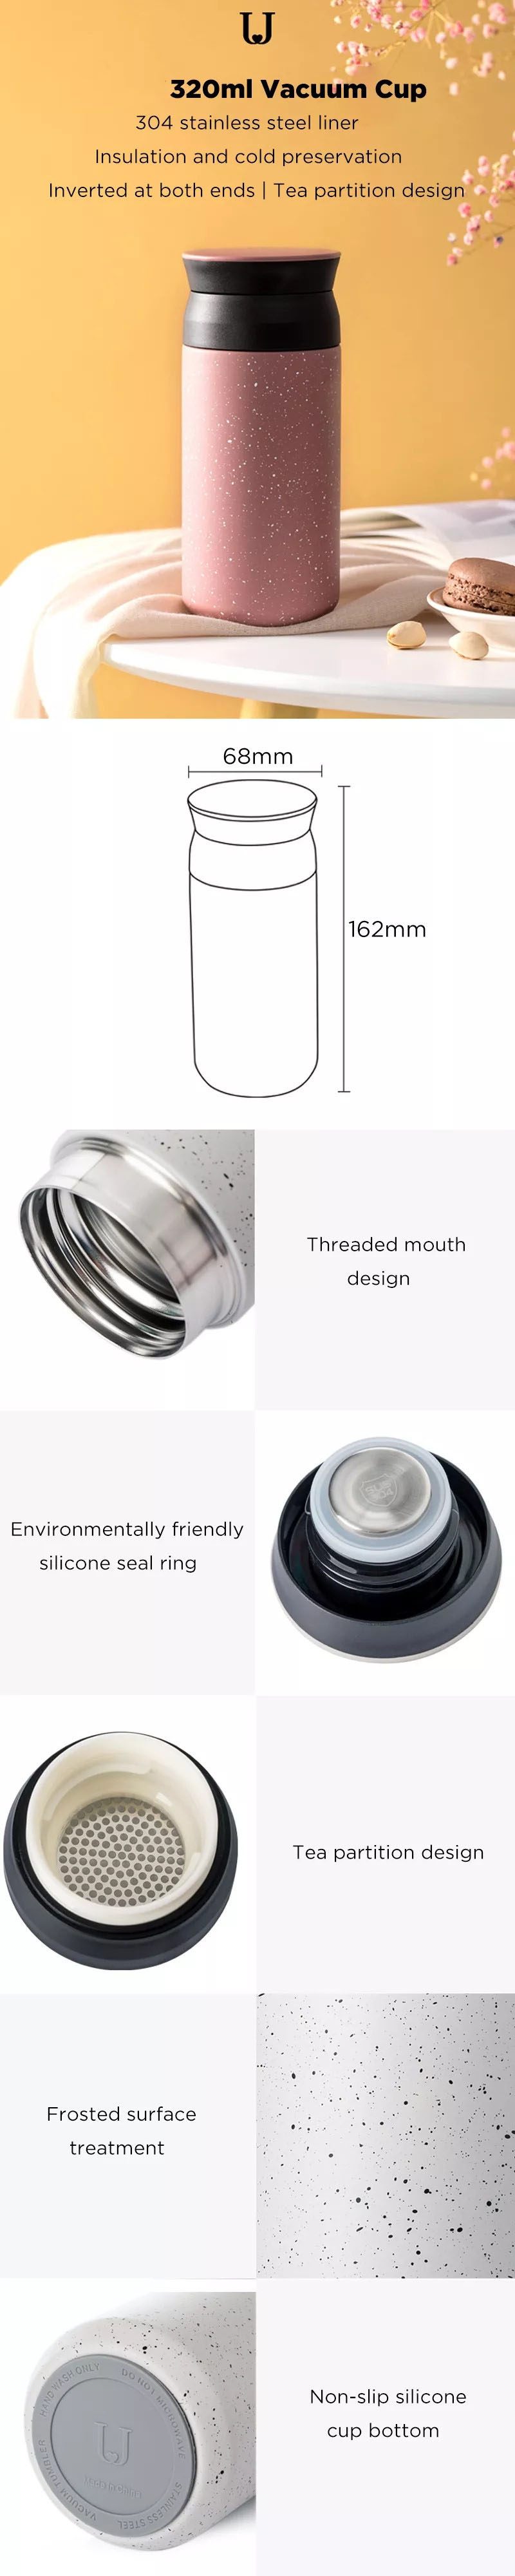 Jordan&judy 320ml Vacuum Cup 304 Stainless Steel Thermos Insulated Water Bottle Leakproof Sports Camping Travel Coffee Mug from Xiaomi Youpin